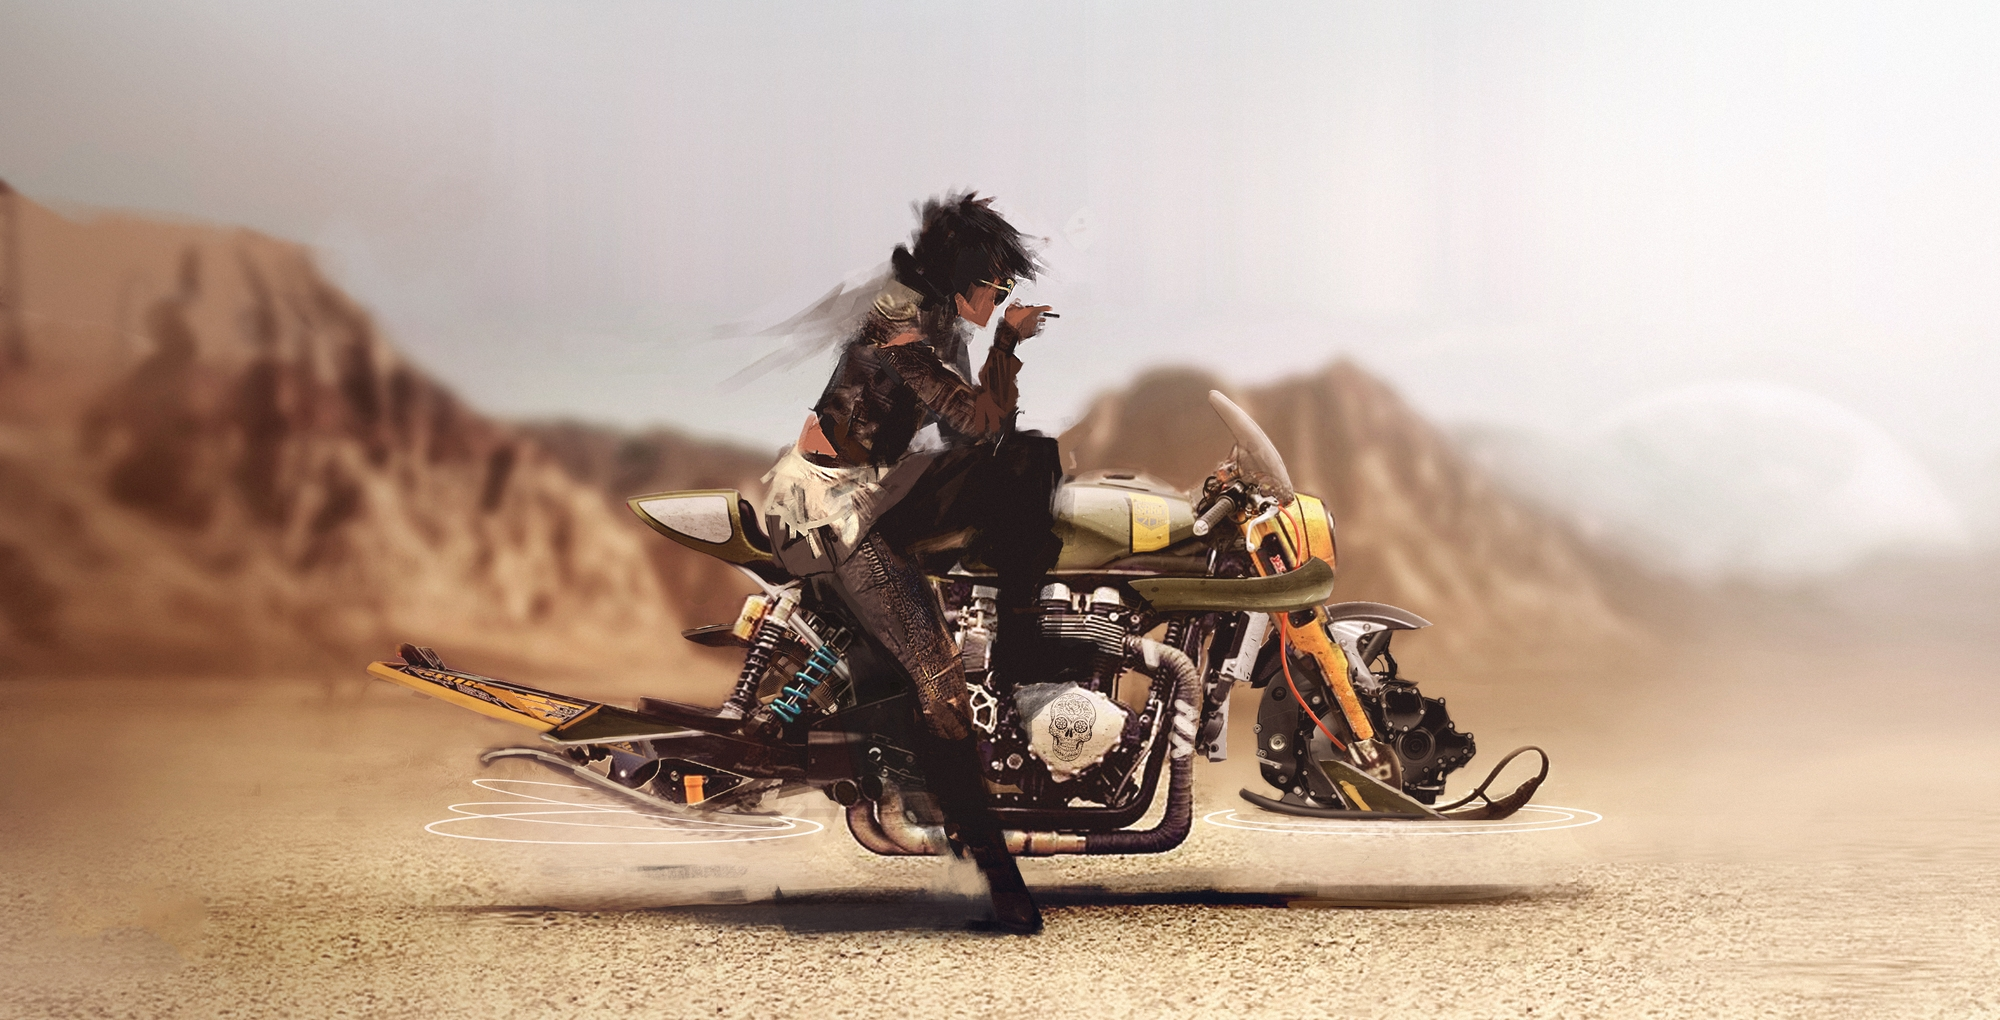 New Behind-the-Scenes Video For Beyond Good and Evil 2